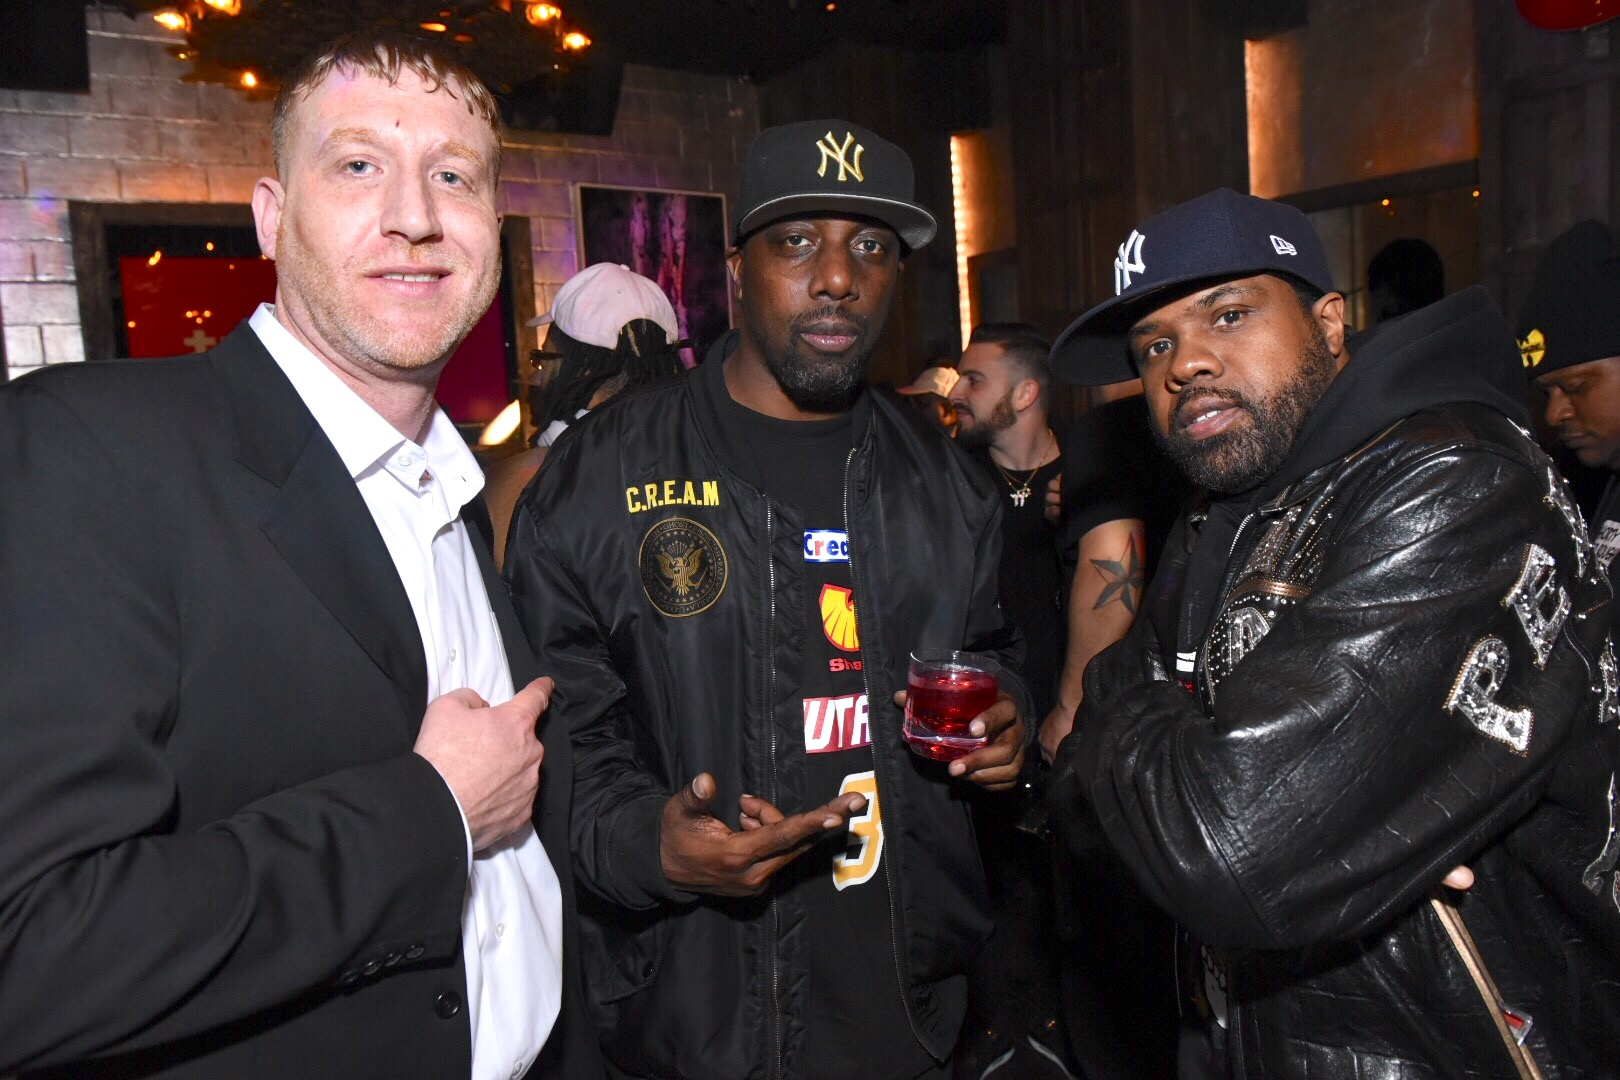 EPMD performs at Tracklib's Global Launch Event @epmd